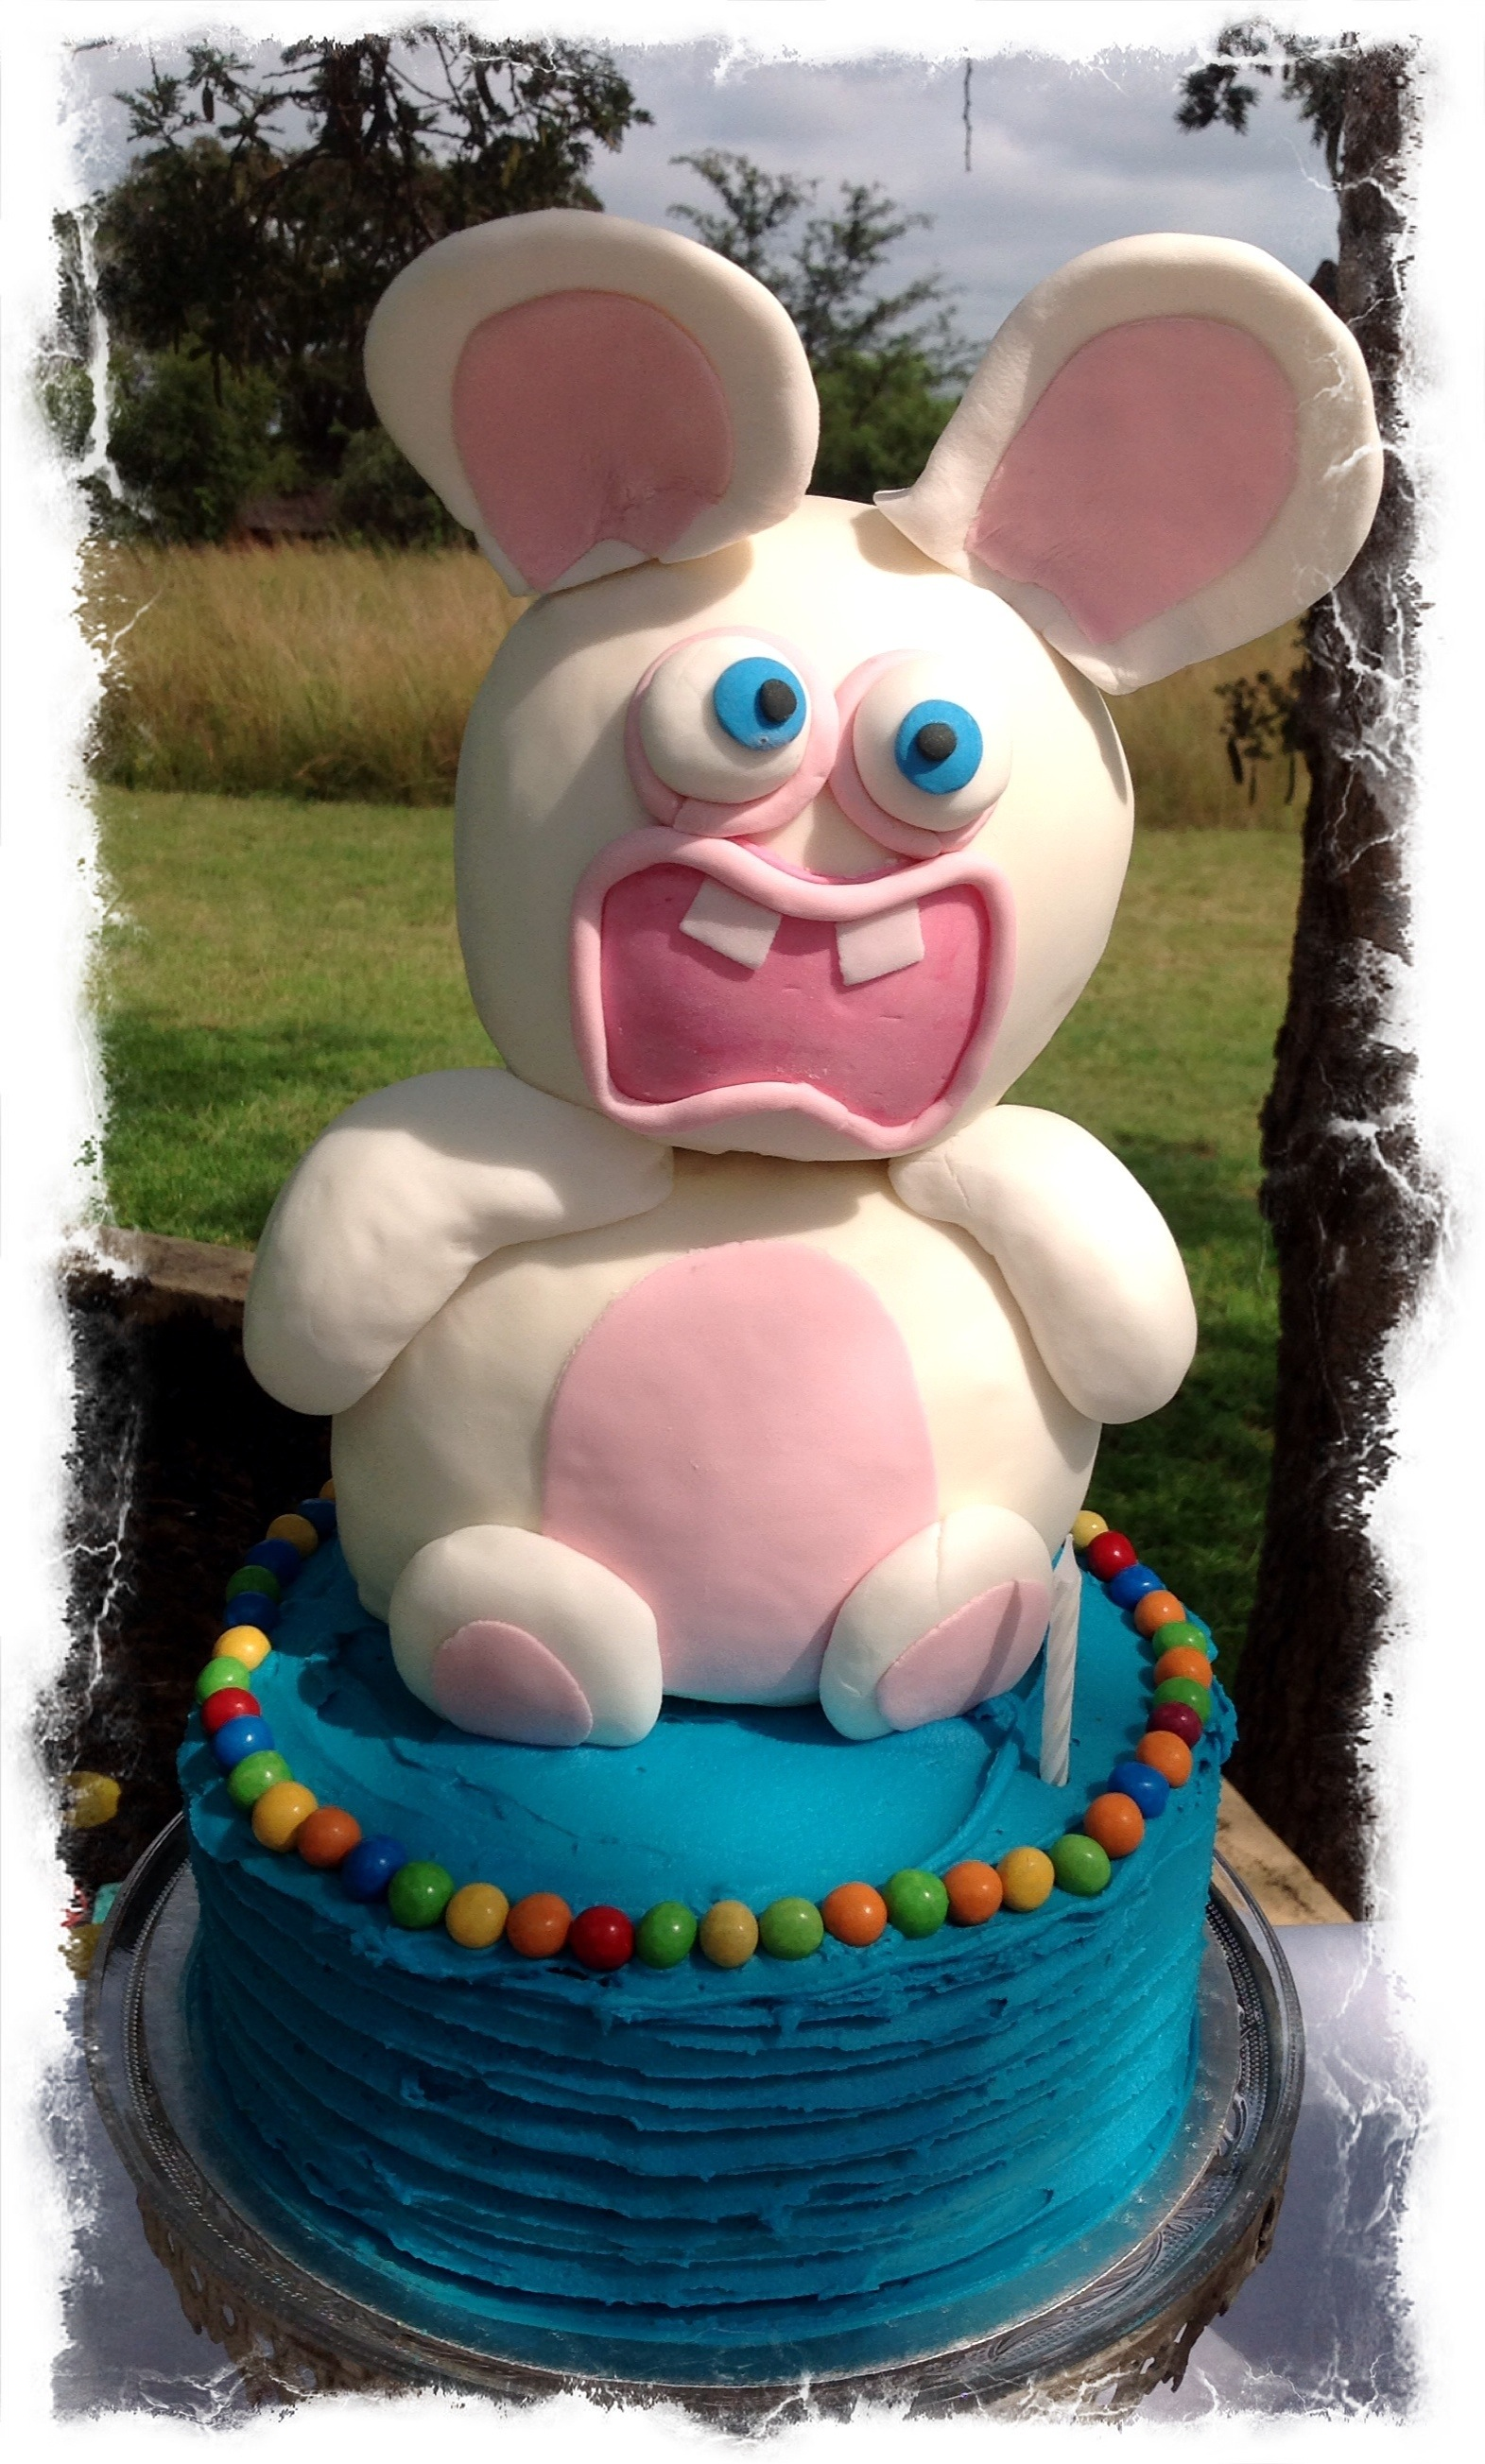 Rabbids Invasion Bespoke Custom Cakes Cupcakes For